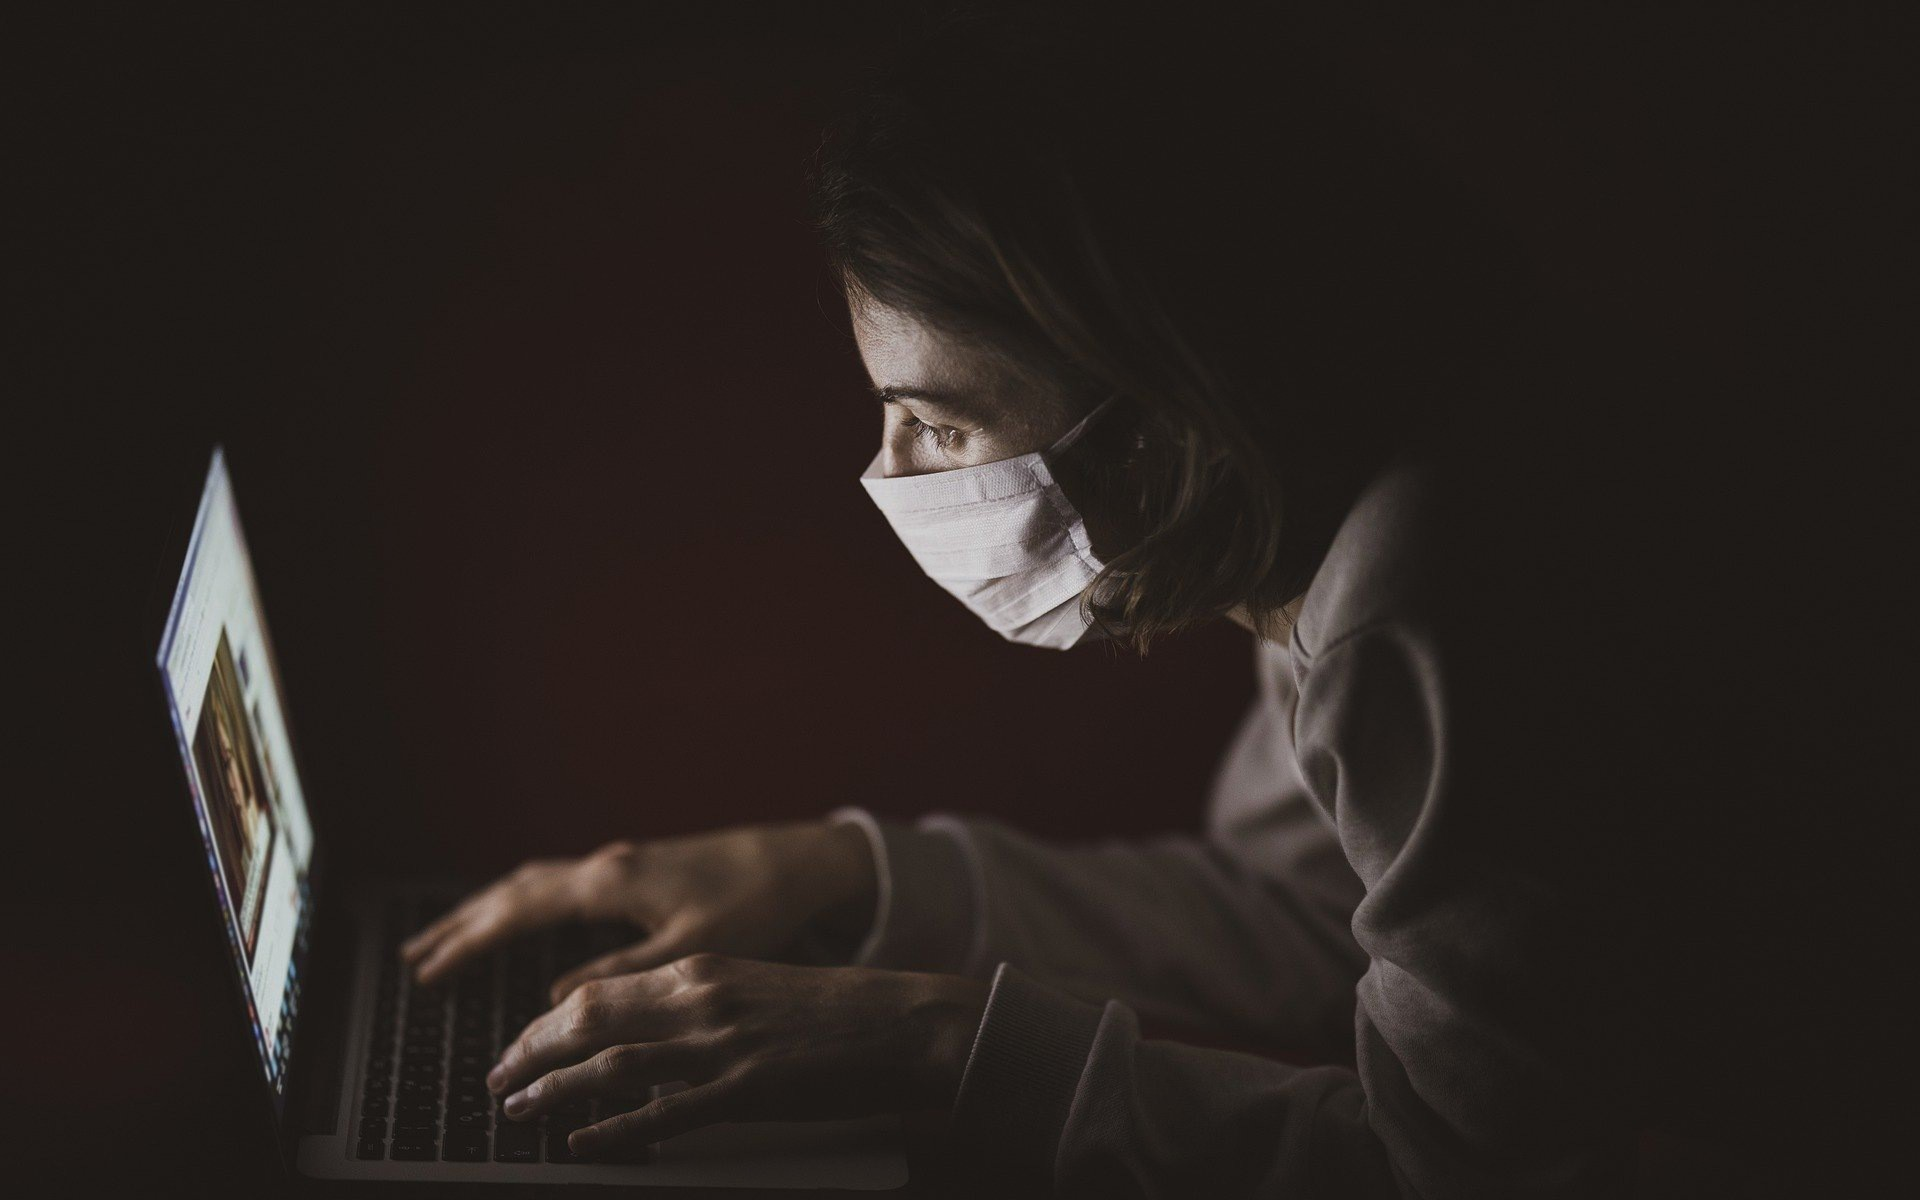 The Role of Software During the COVID-19 Pandemic